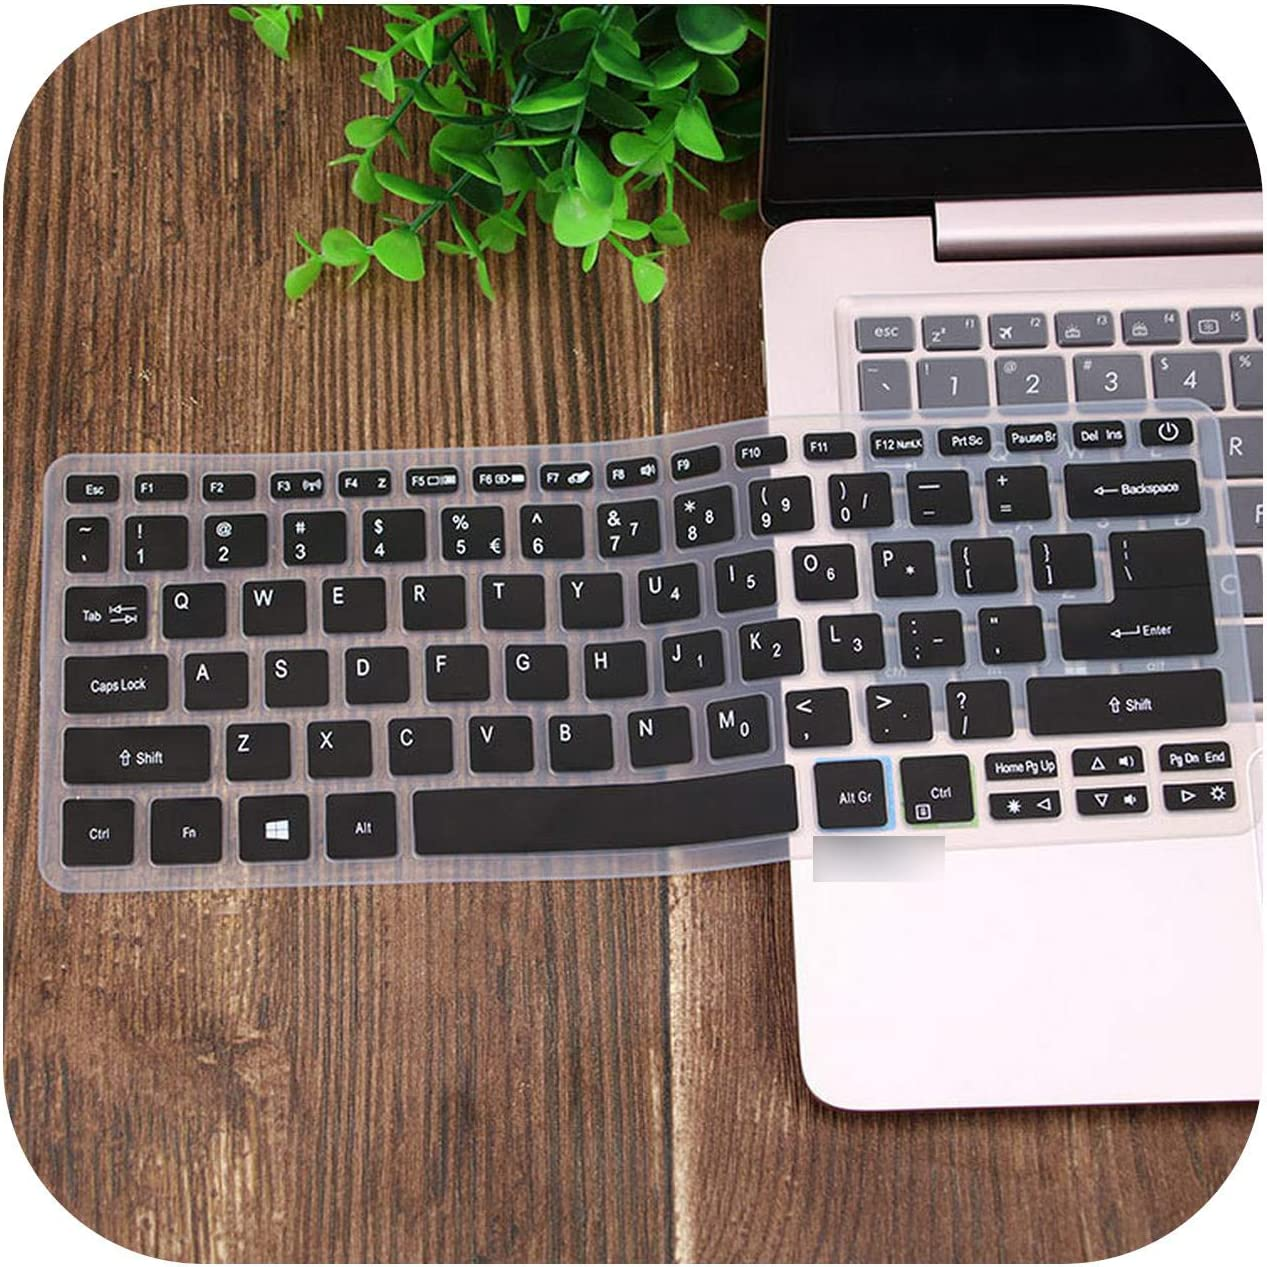 Swift 1 Sf114 32 14 Inch I5 8250U Notebook-Gradientskyblue Silicone Keyboard Cover Skin Protector Guard for Acer Swift 3 Sf314 52 Sf314 54